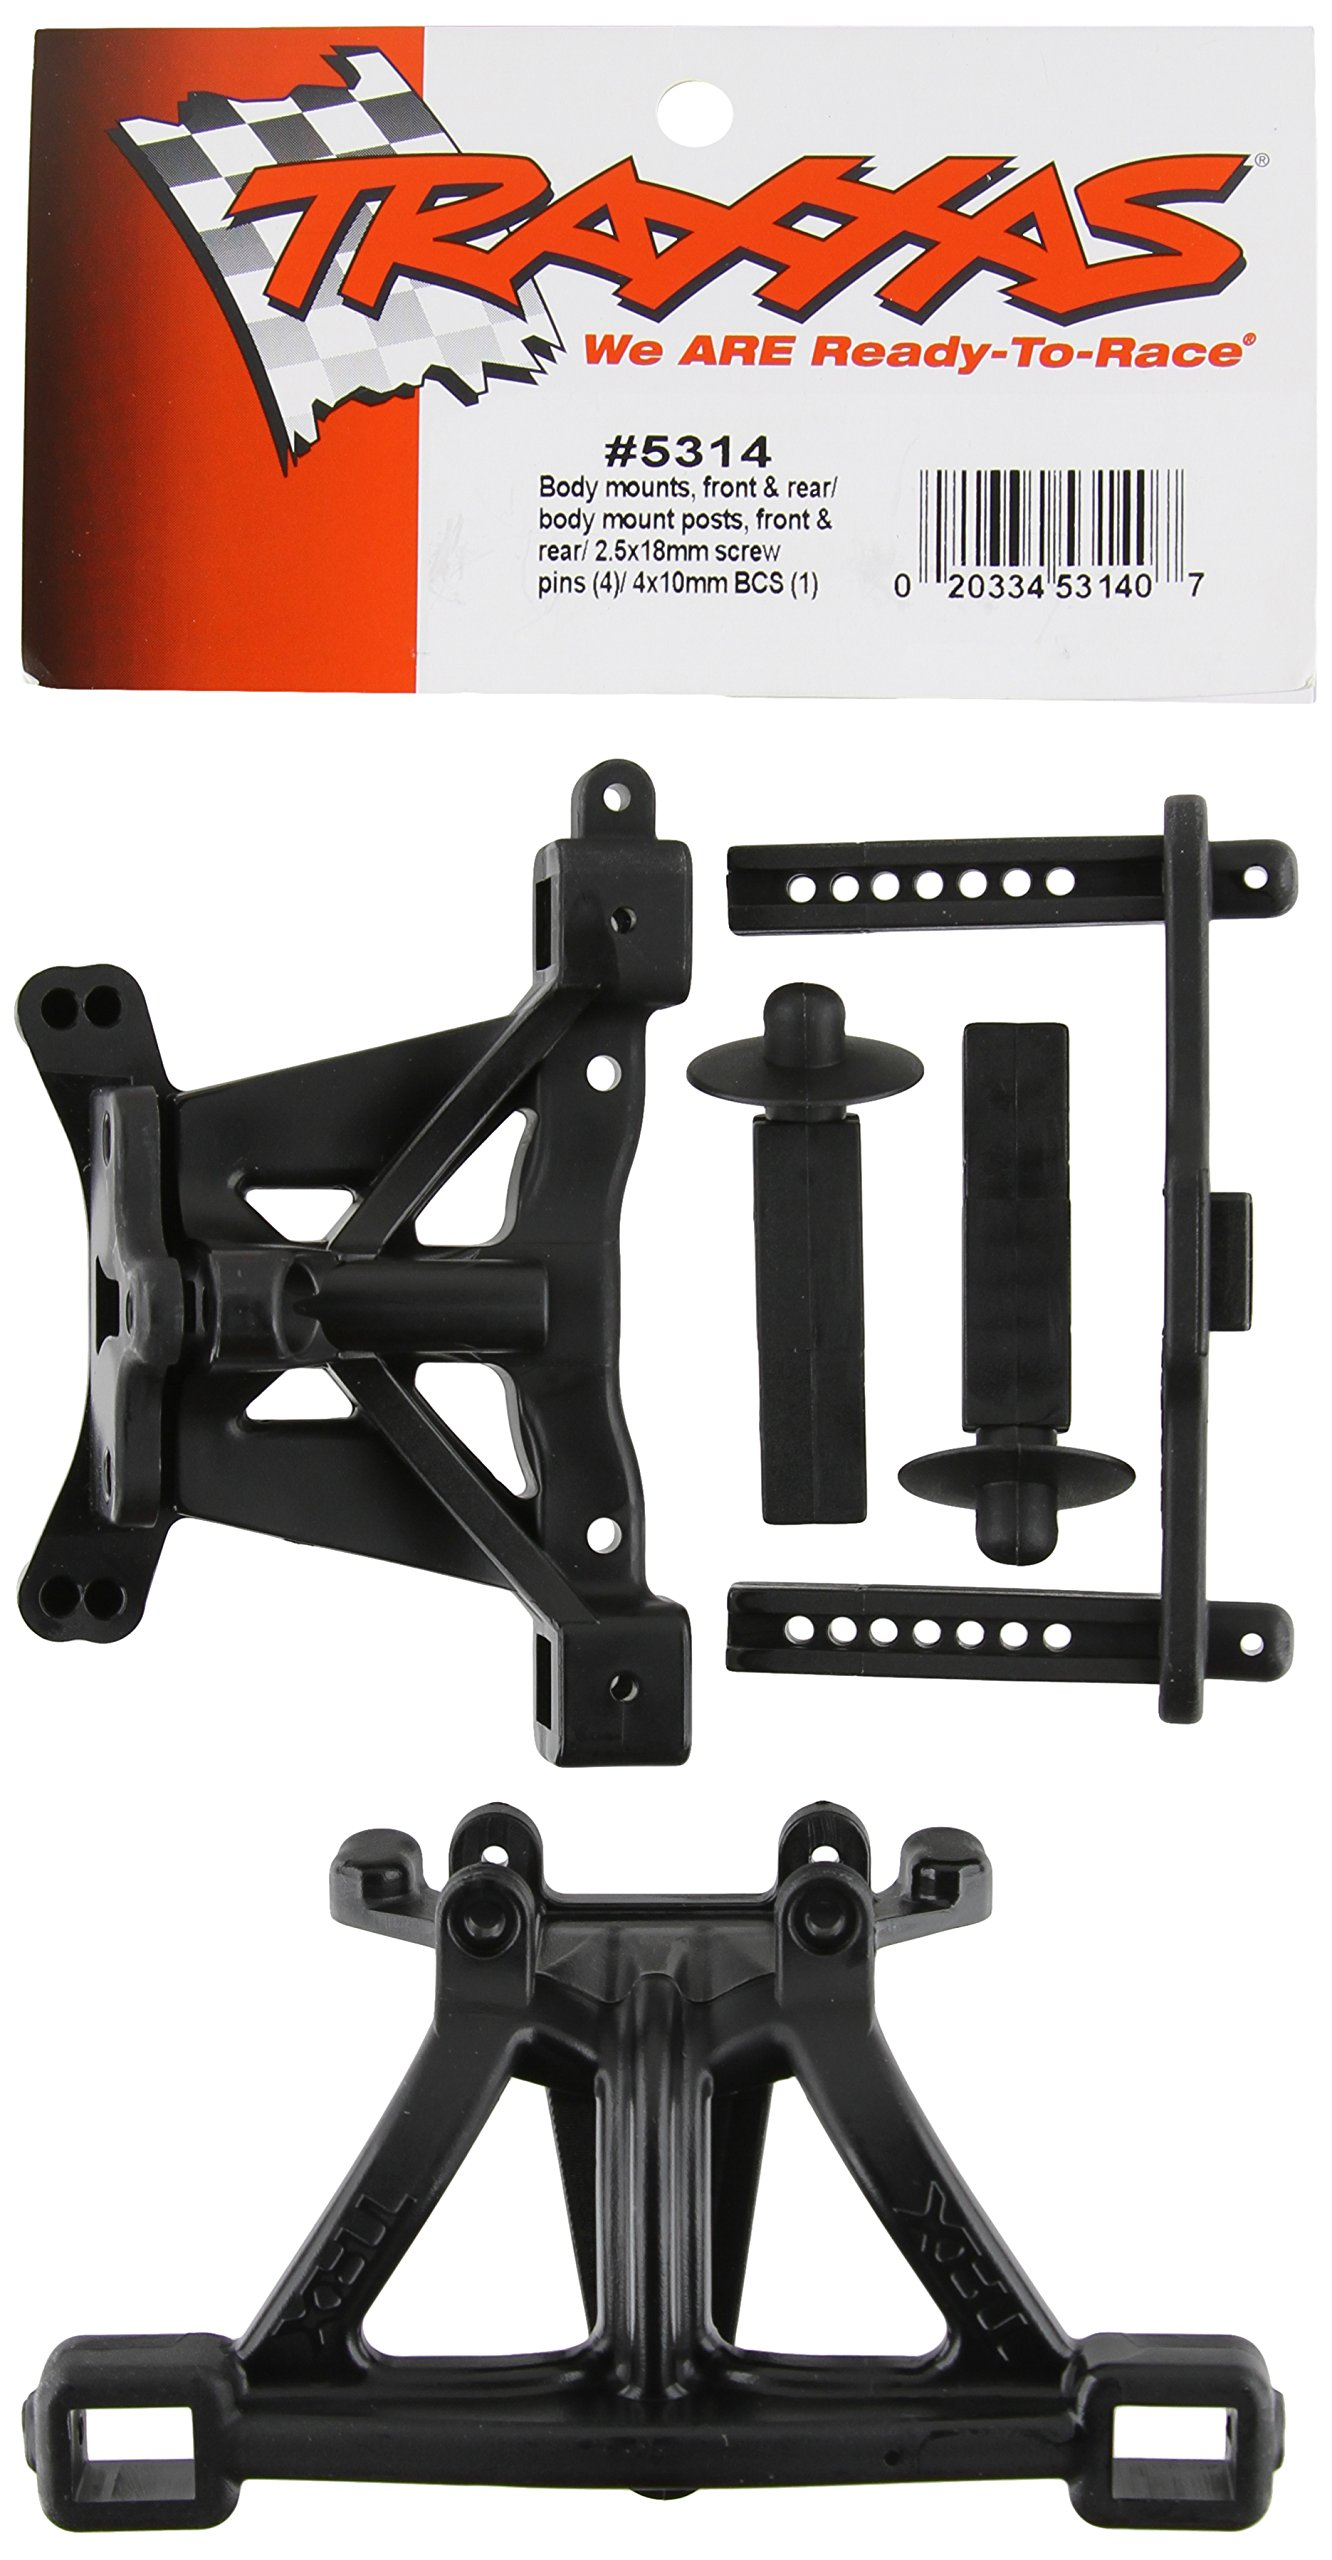 Traxxas 5314 Front and Rear Body Mounts with Posts and Pins